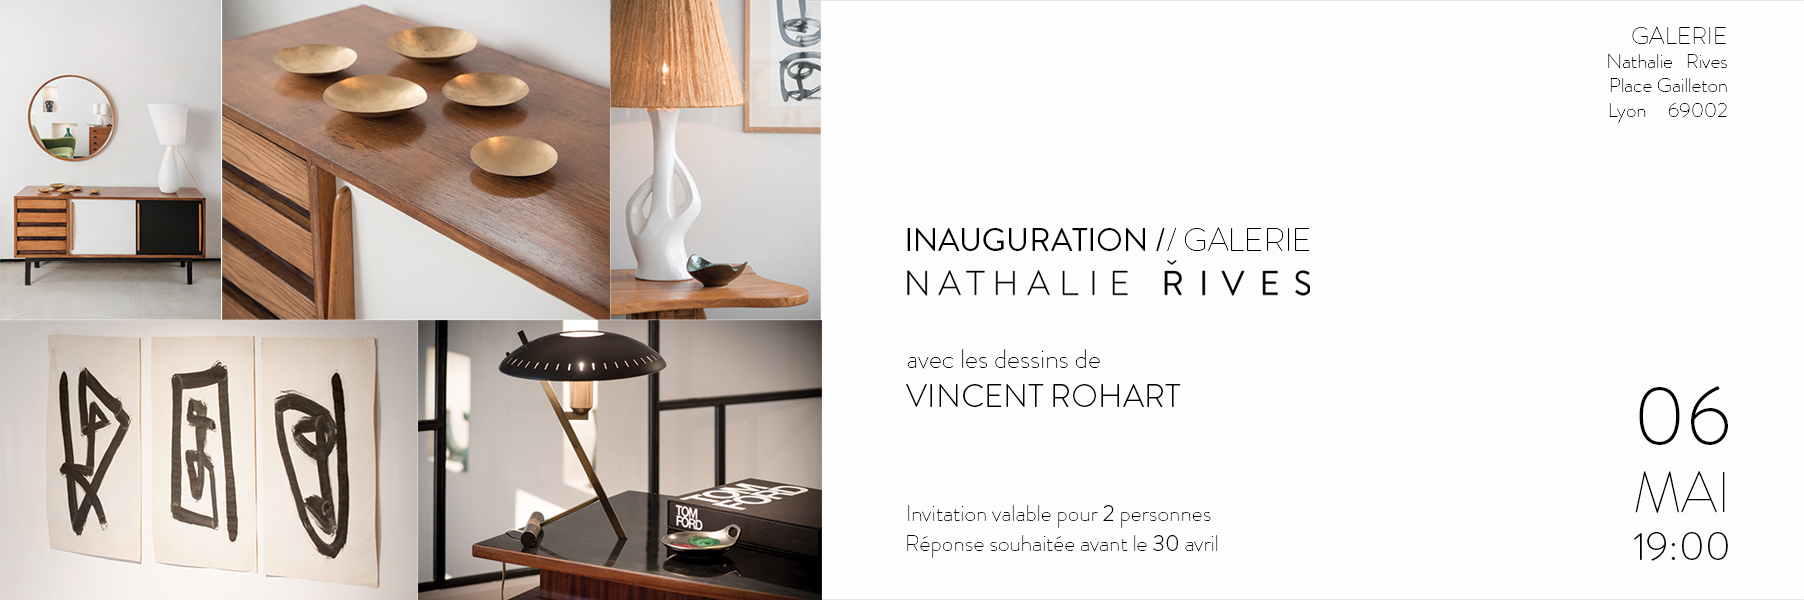 Inauguration Galerie Nathalie Rives